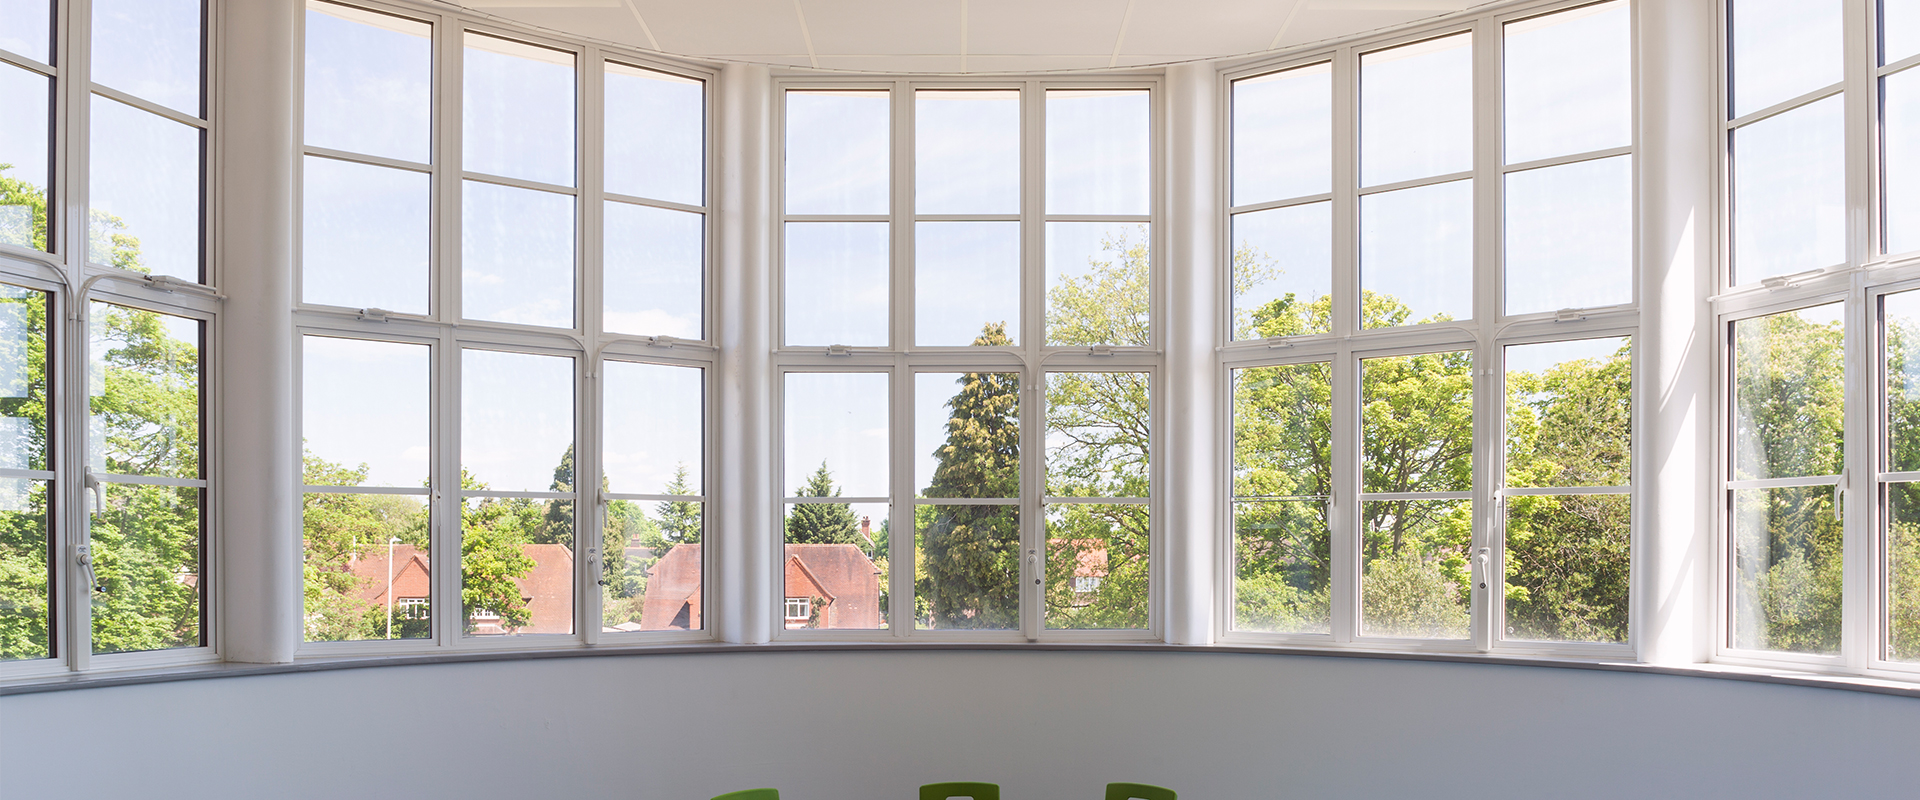 Crittall Windows Prices Orpington